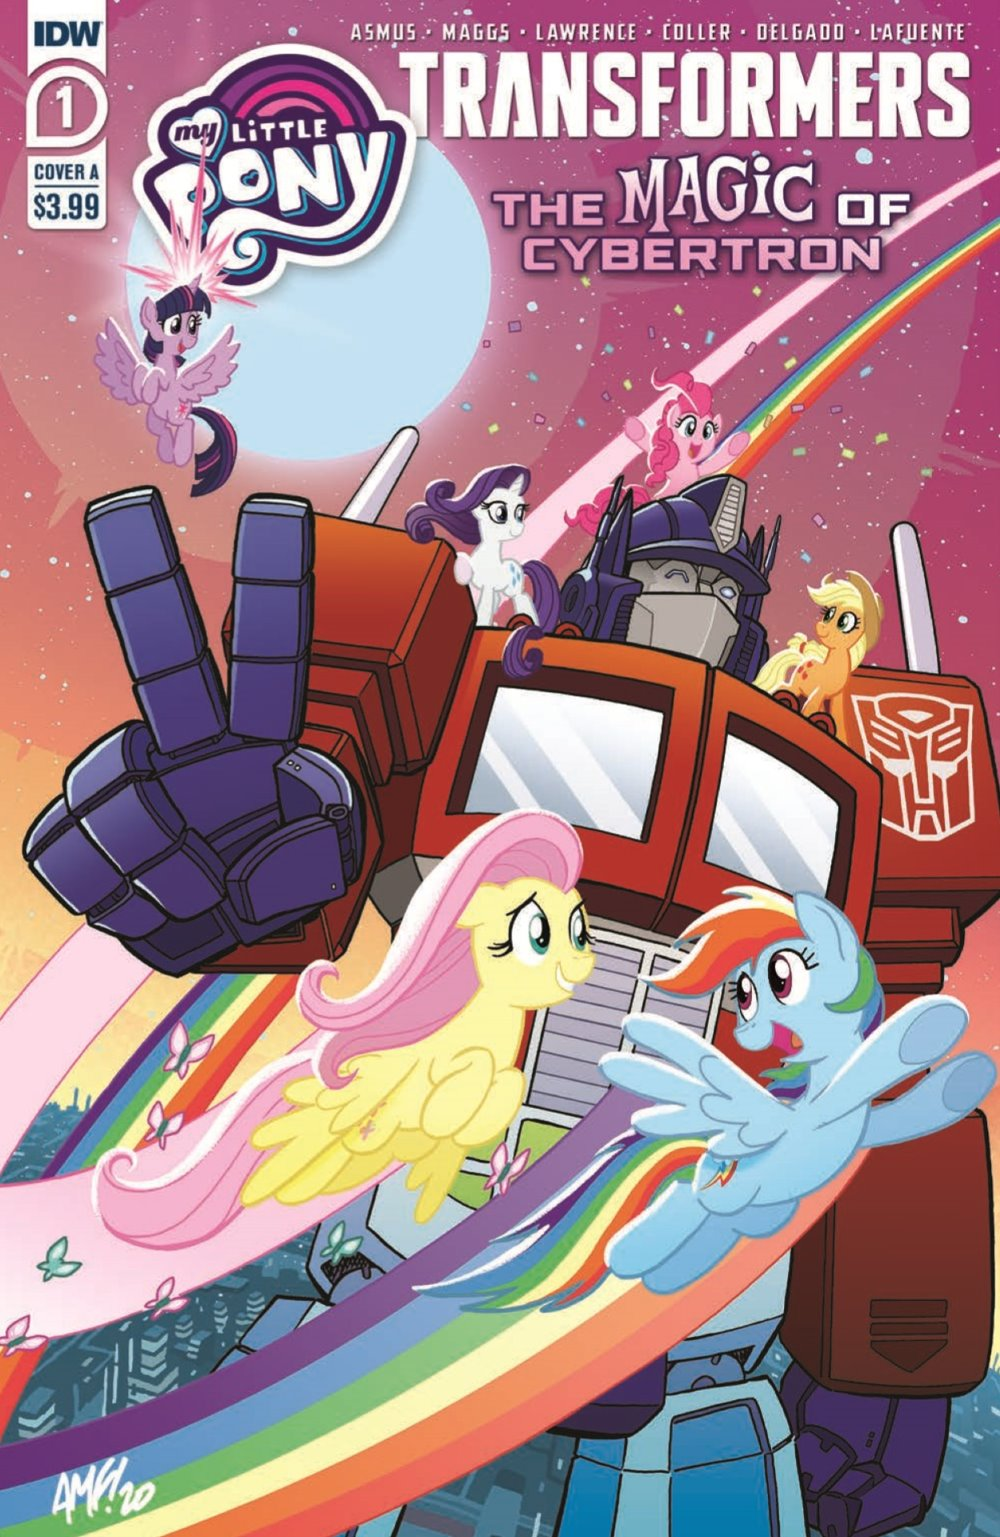 TFMLP2-01-pr-1 ComicList: IDW Publishing New Releases for 04/28/2021